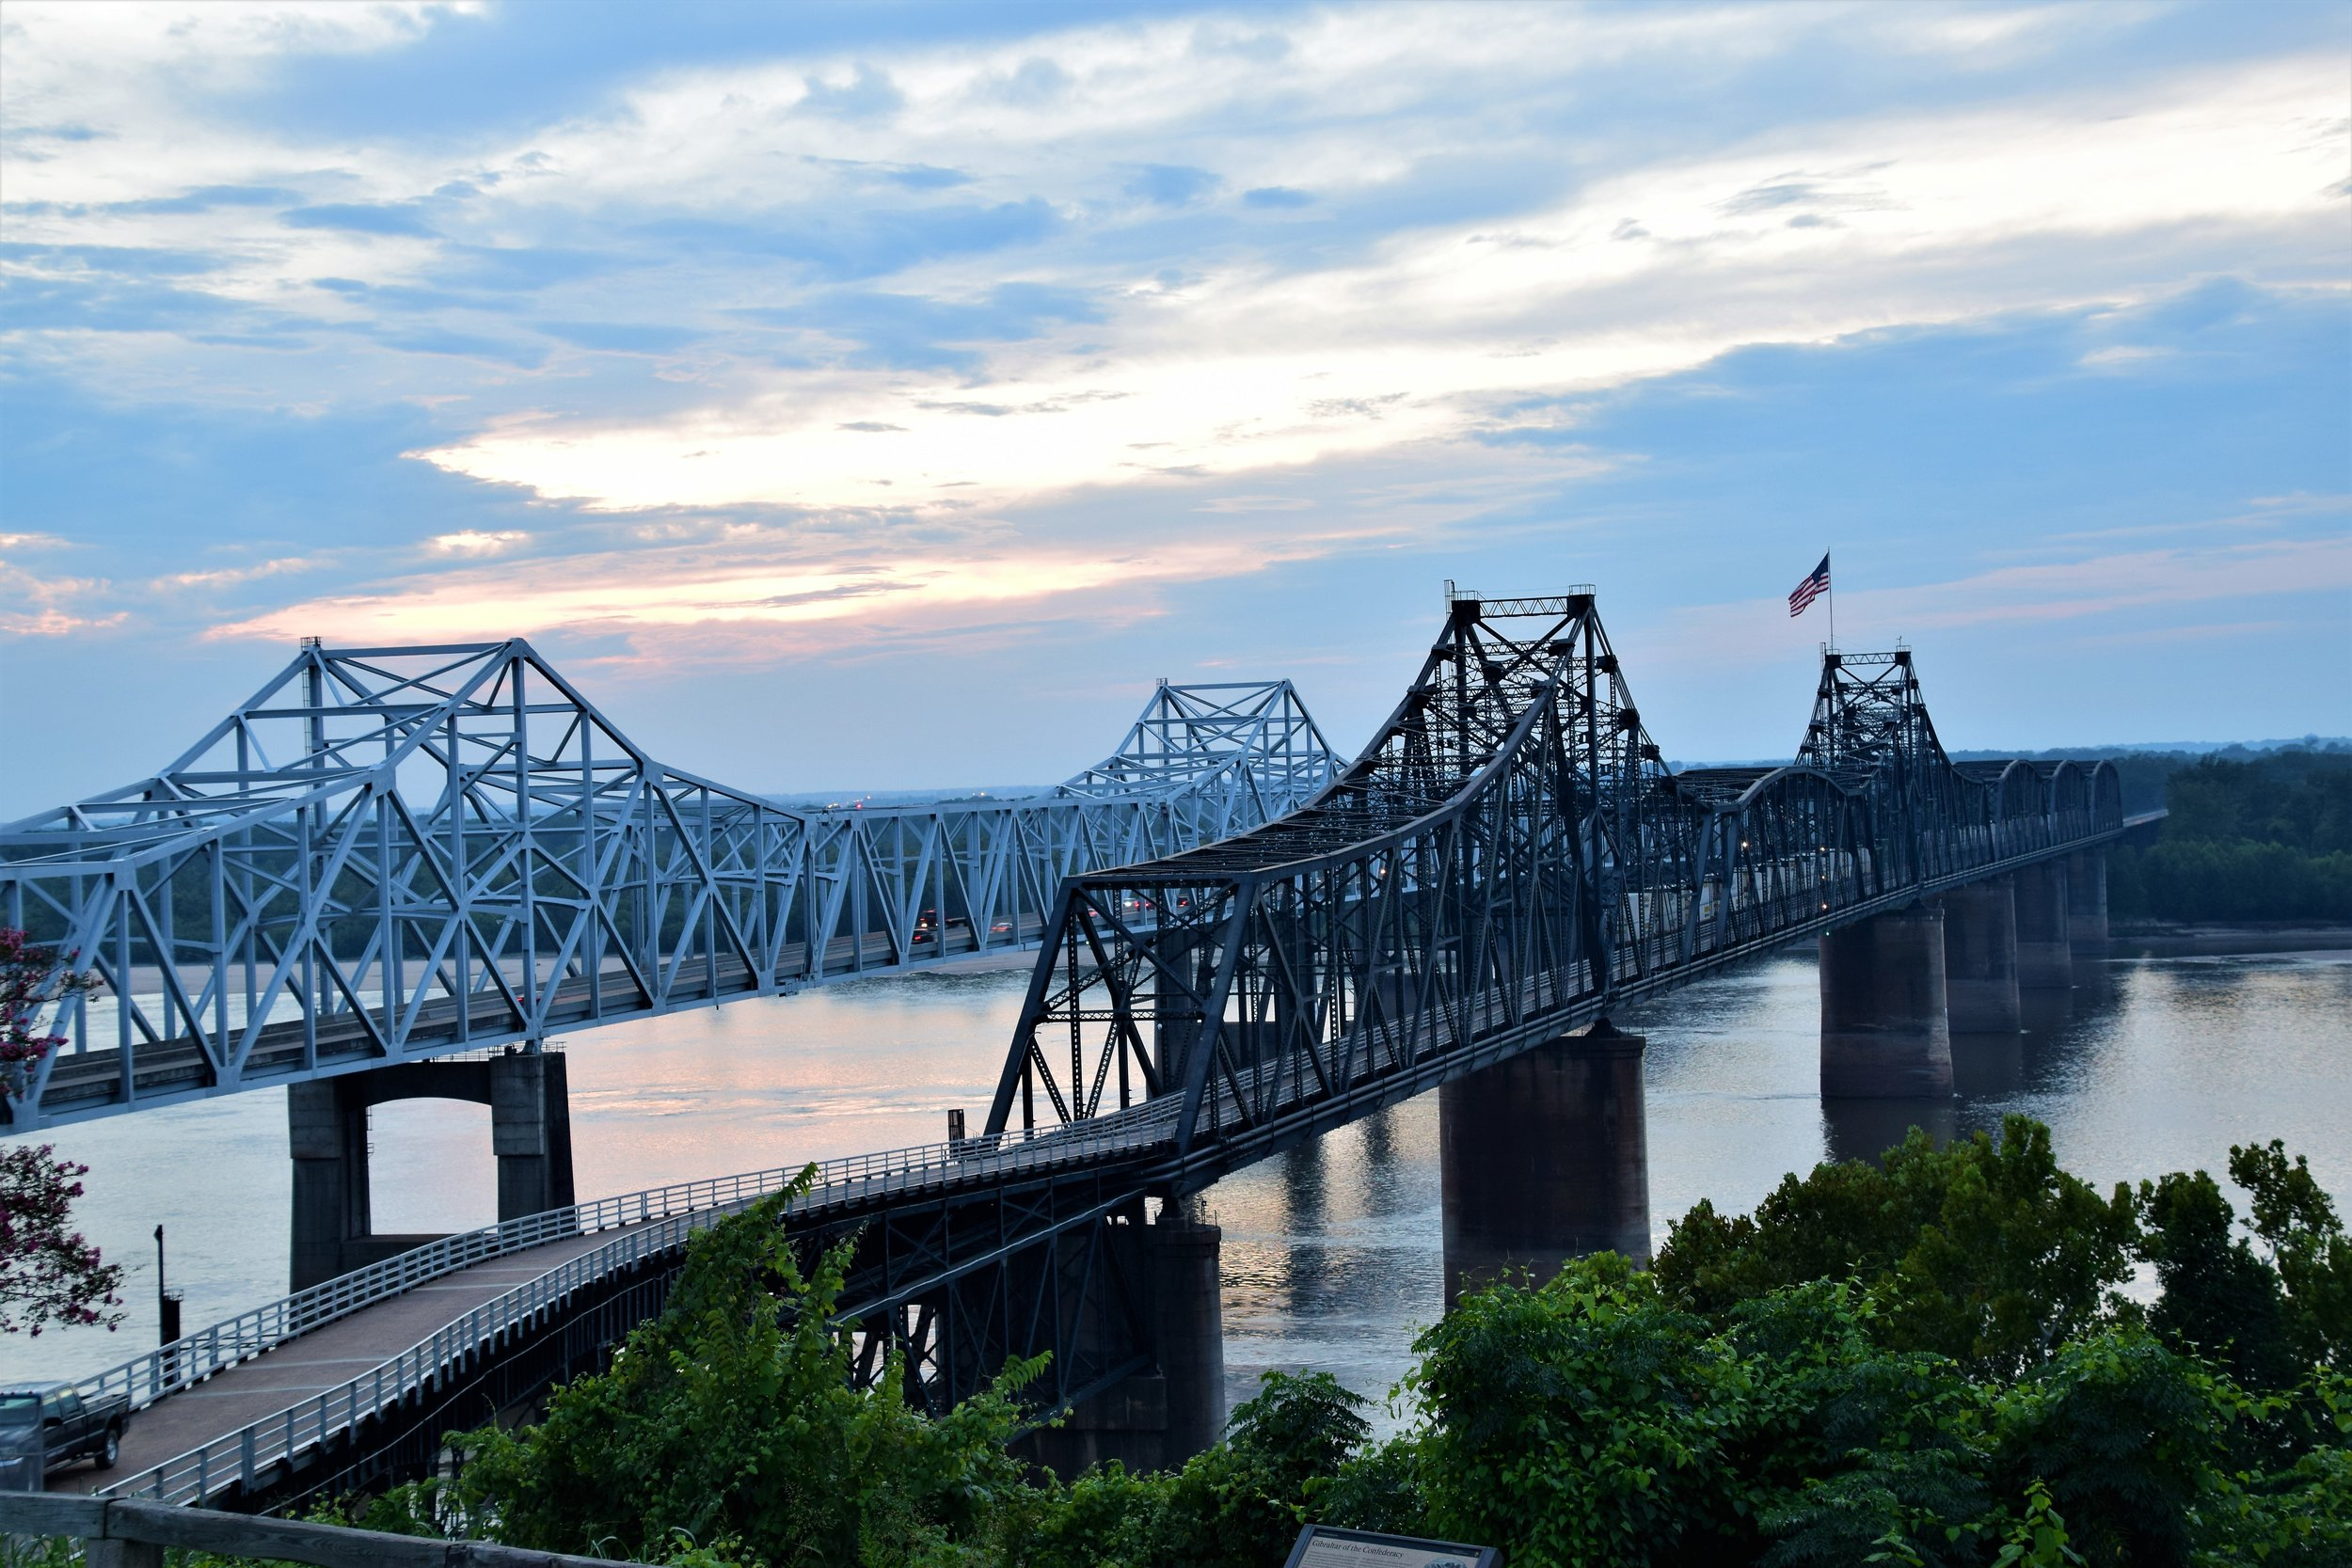 Vicksburg side of the bridge